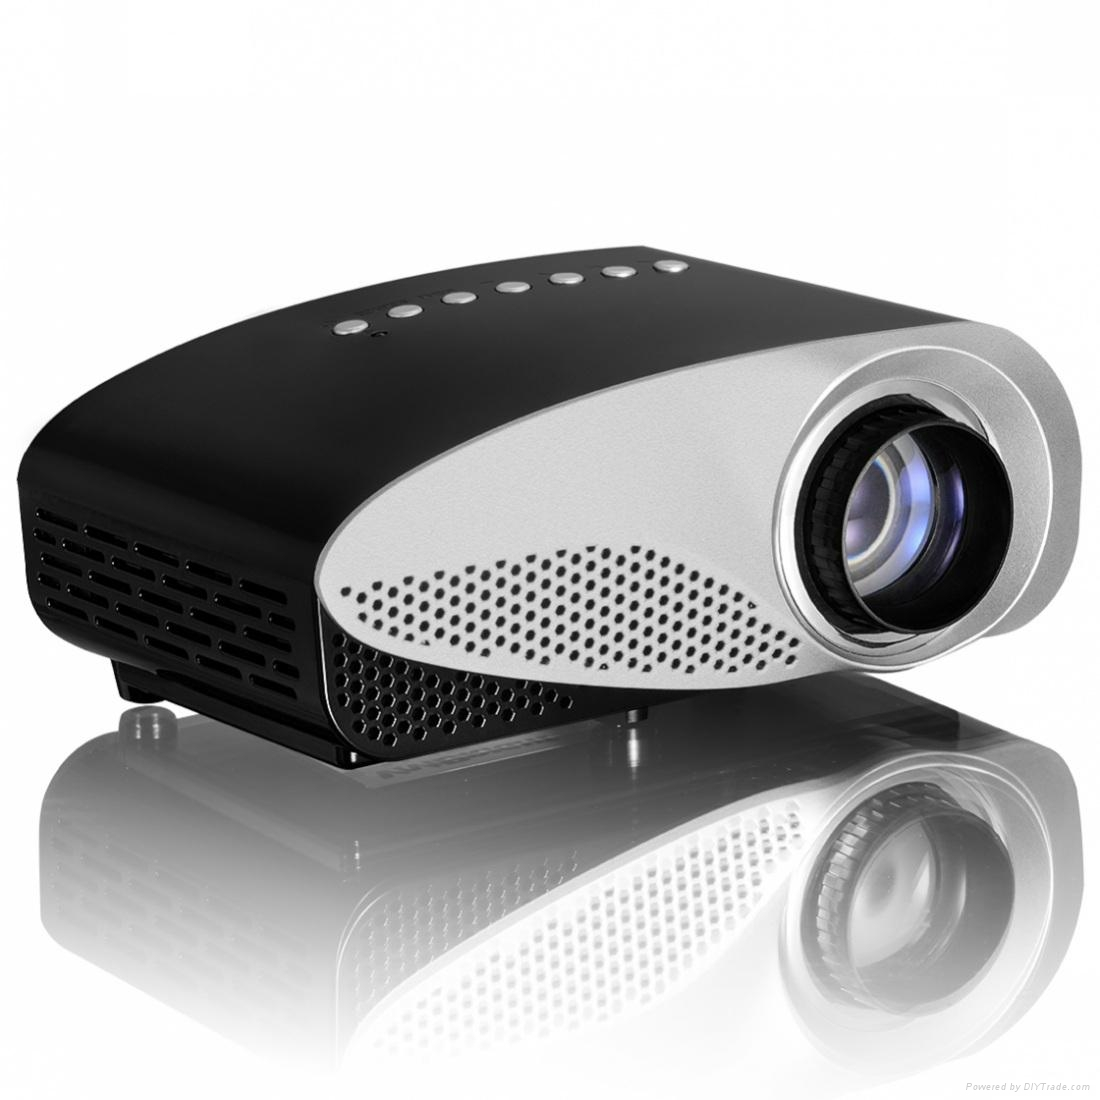 Vivibright newest gp8s projector mini home theater for Micro projector 1080p